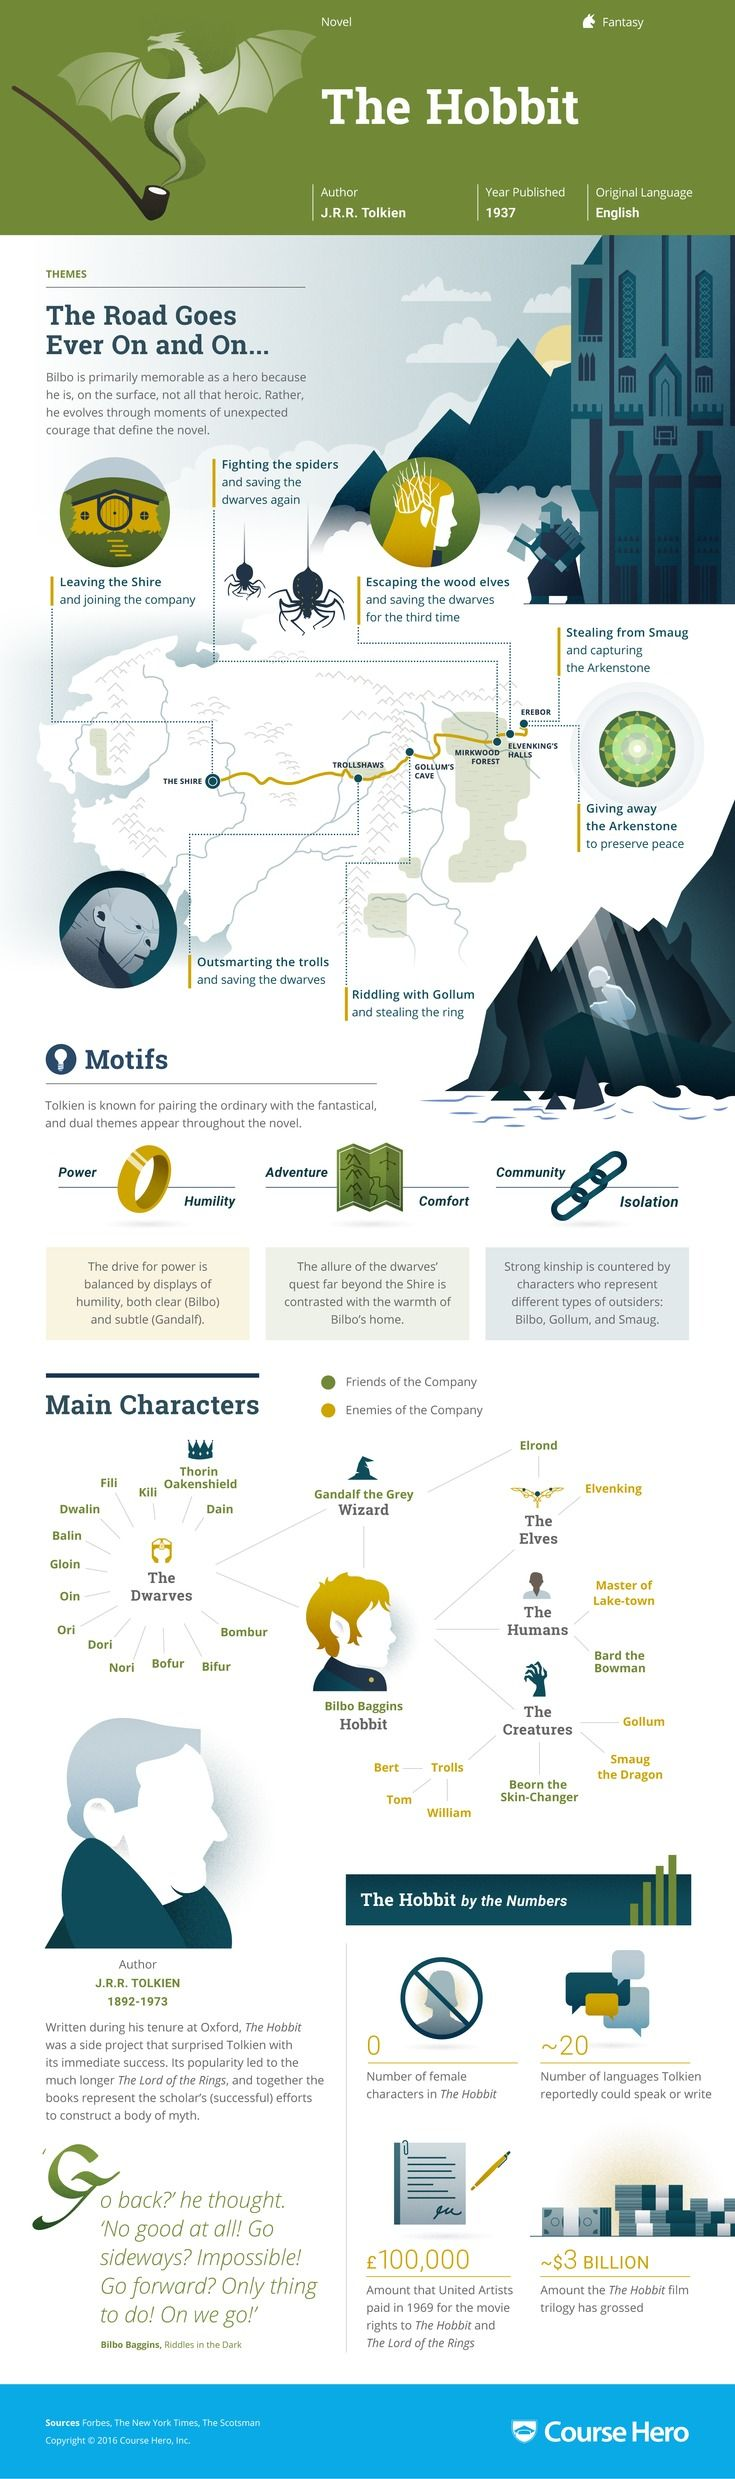 This 'The Hobbit' infographic from Course Hero is as awesome as it is helpful. Check it out!